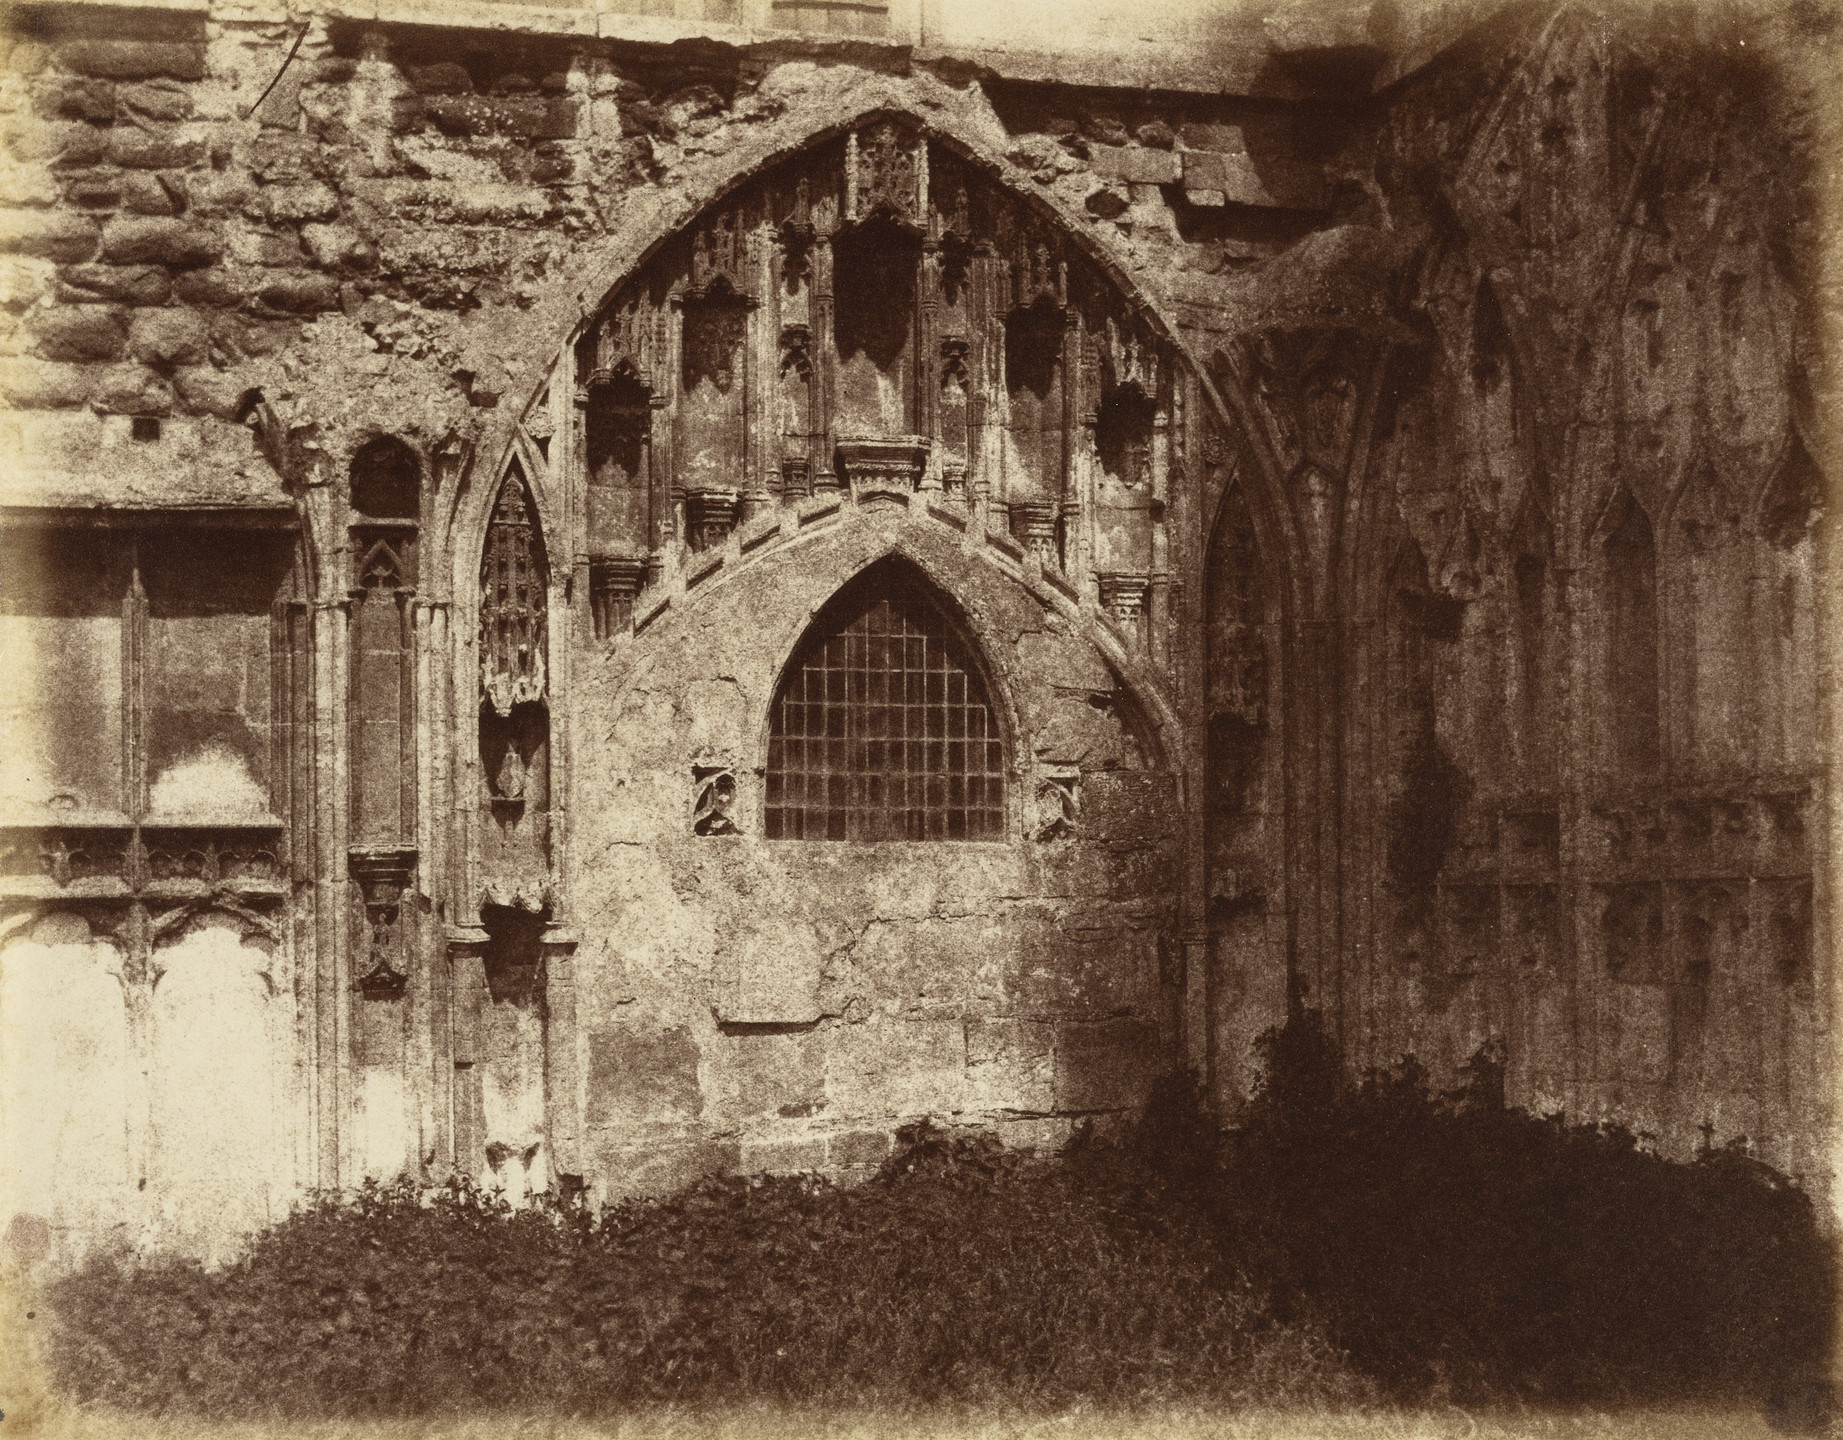 Alfred Capel Cure. Ancient Entrance to Cloisters, Tewkesbury. 1859